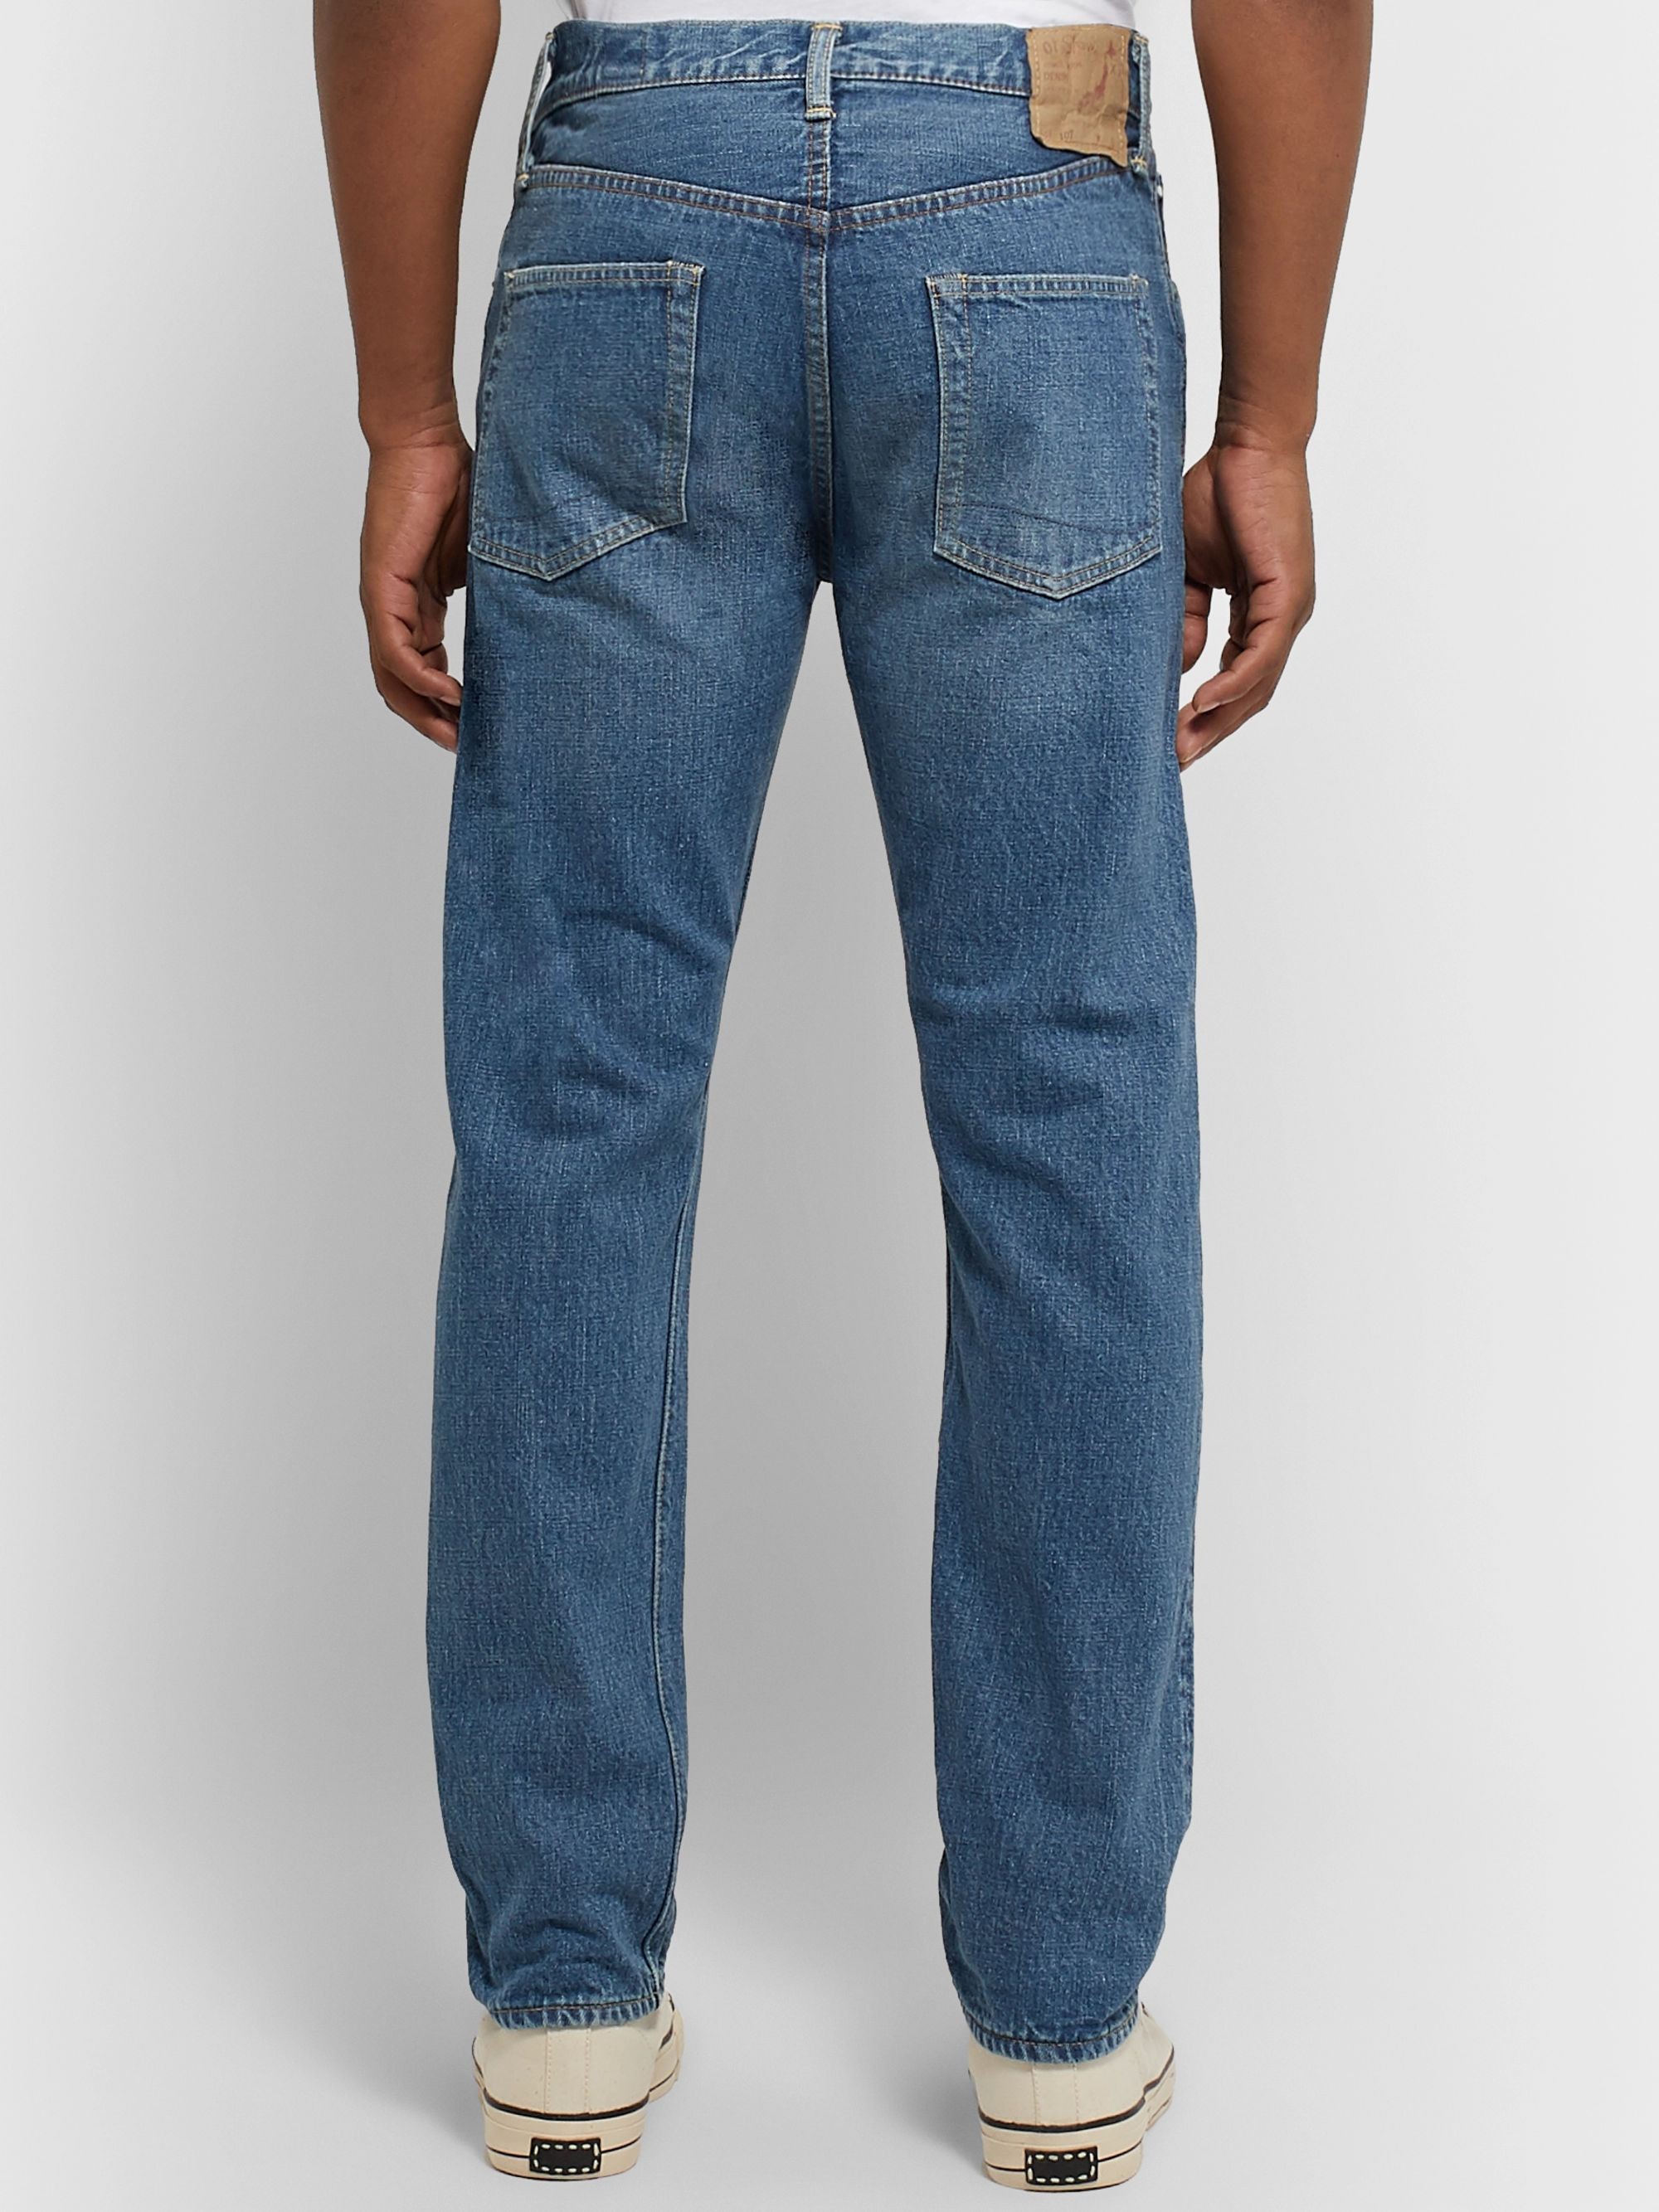 OrSlow Original 107 Slim-Fit Selvedge Denim Jeans